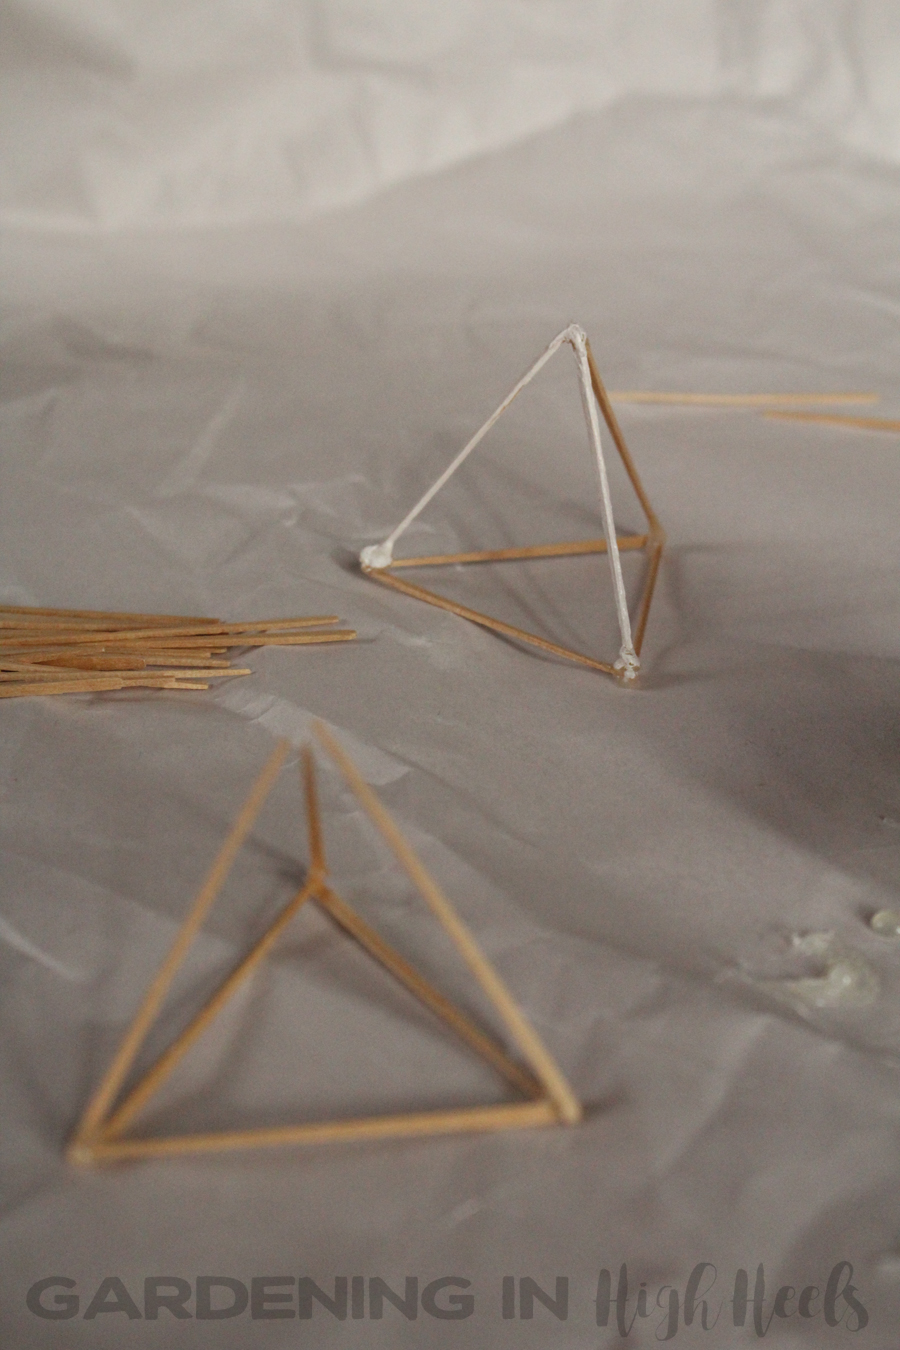 DIY toothpick air plant holder. So easy to make!